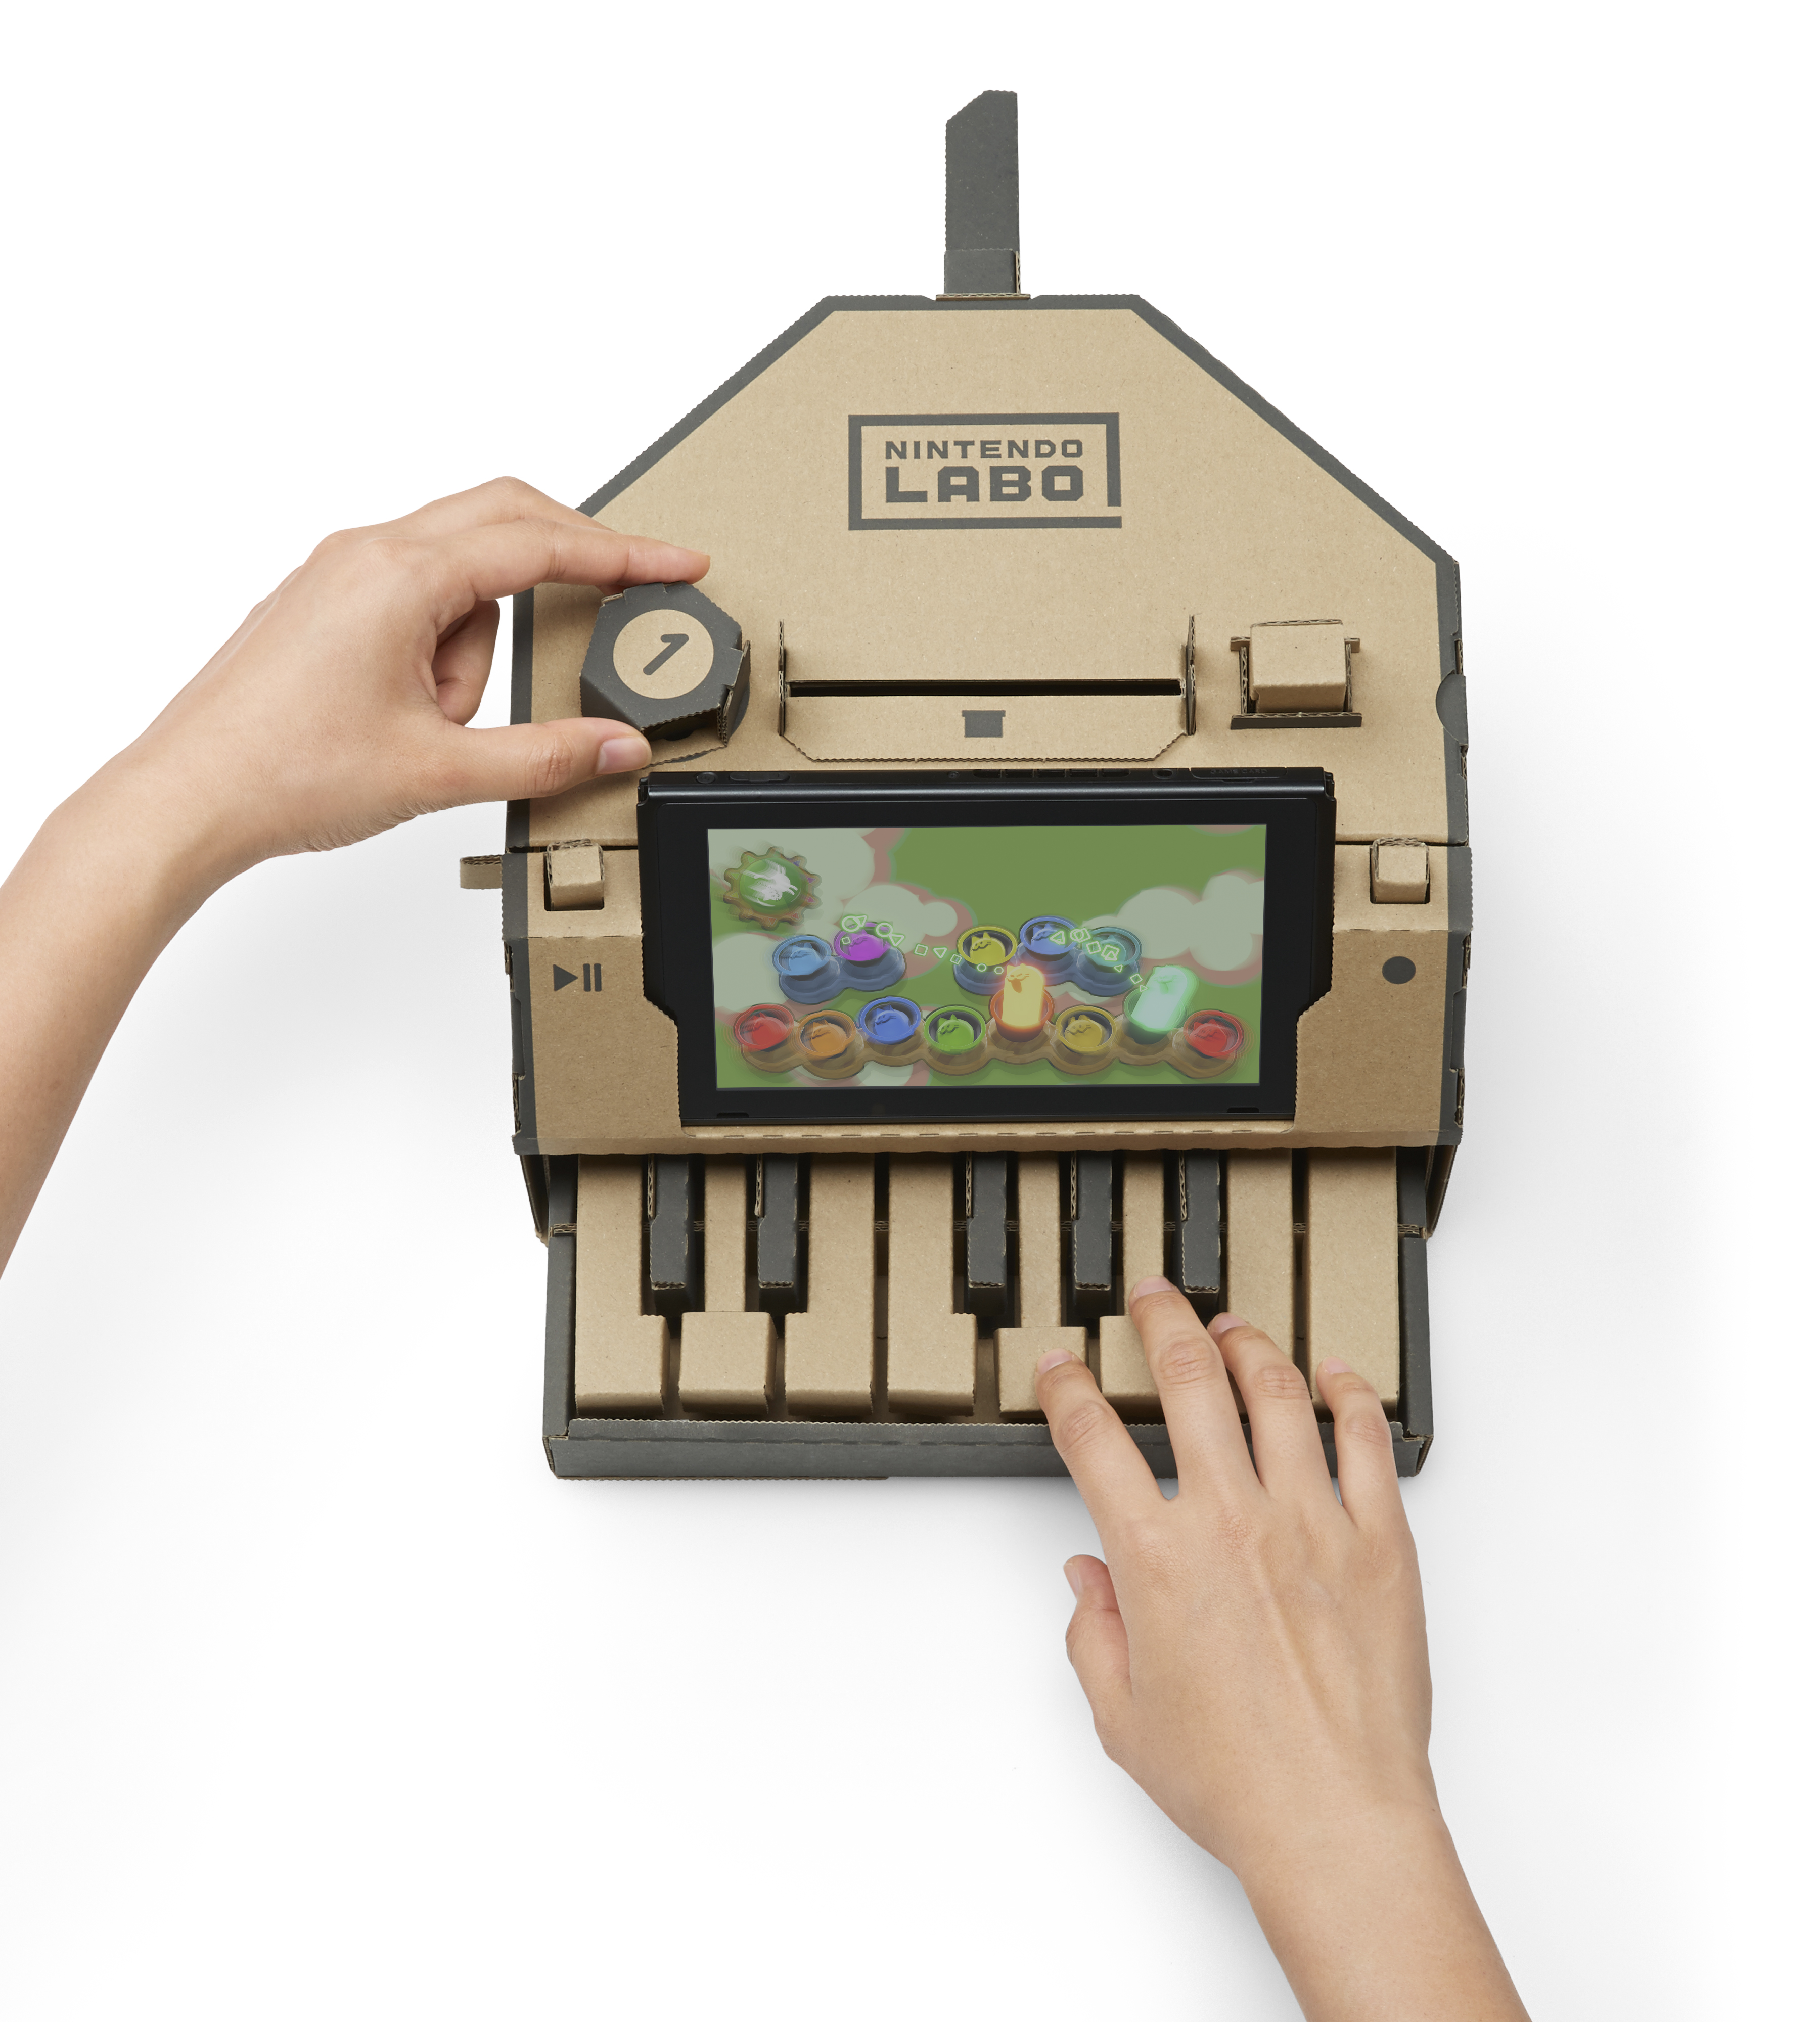 Nintendo's Labo variety kit for the Switch